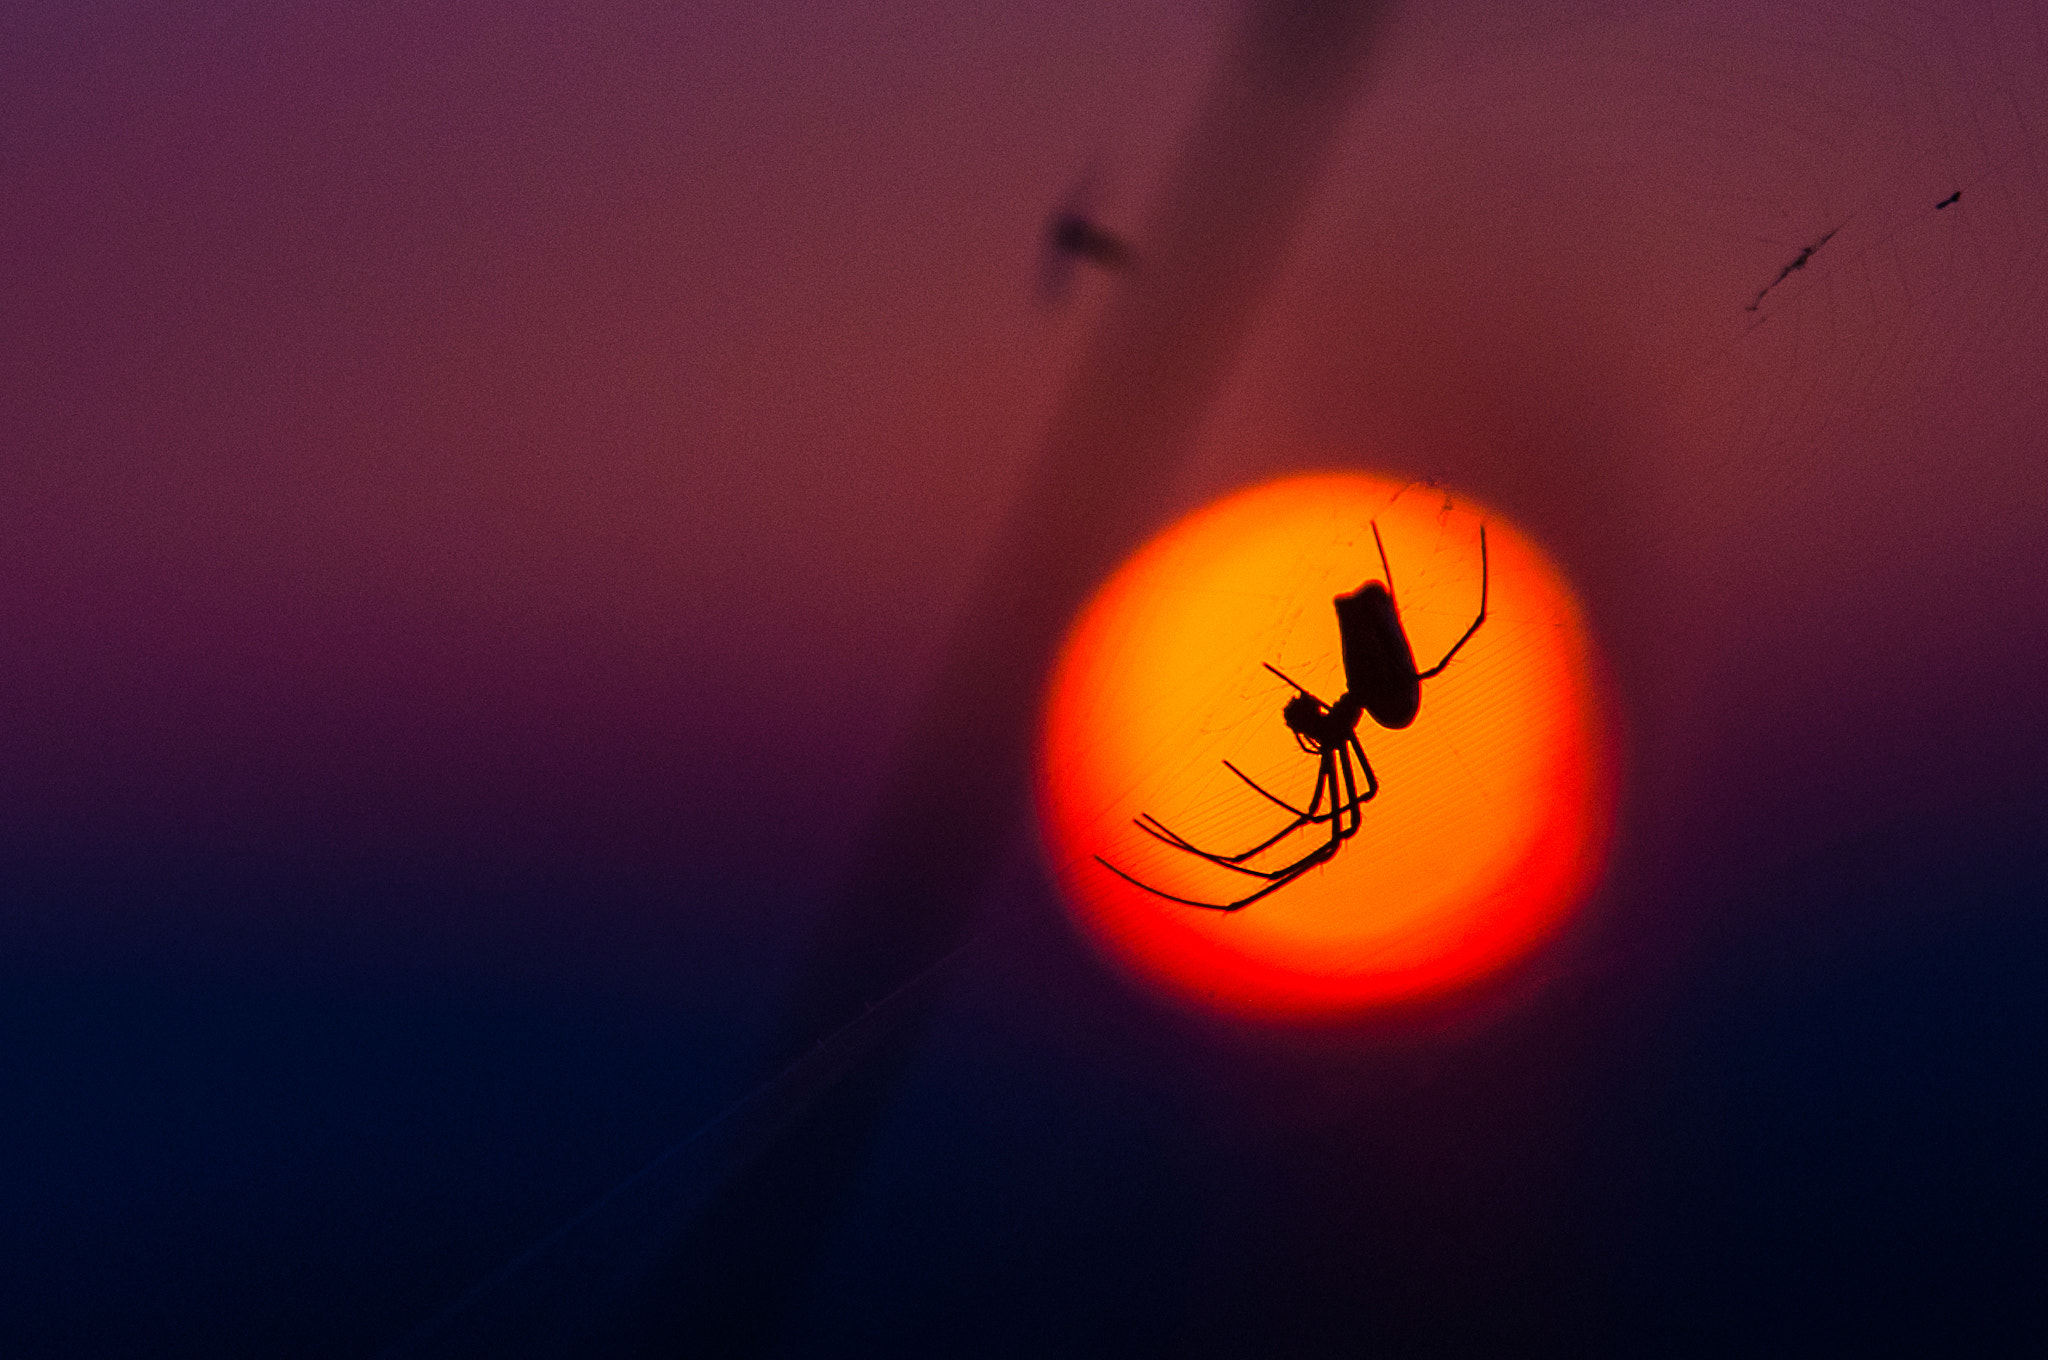 Photograph Spider by Bo-Yuan Zheng on 500px